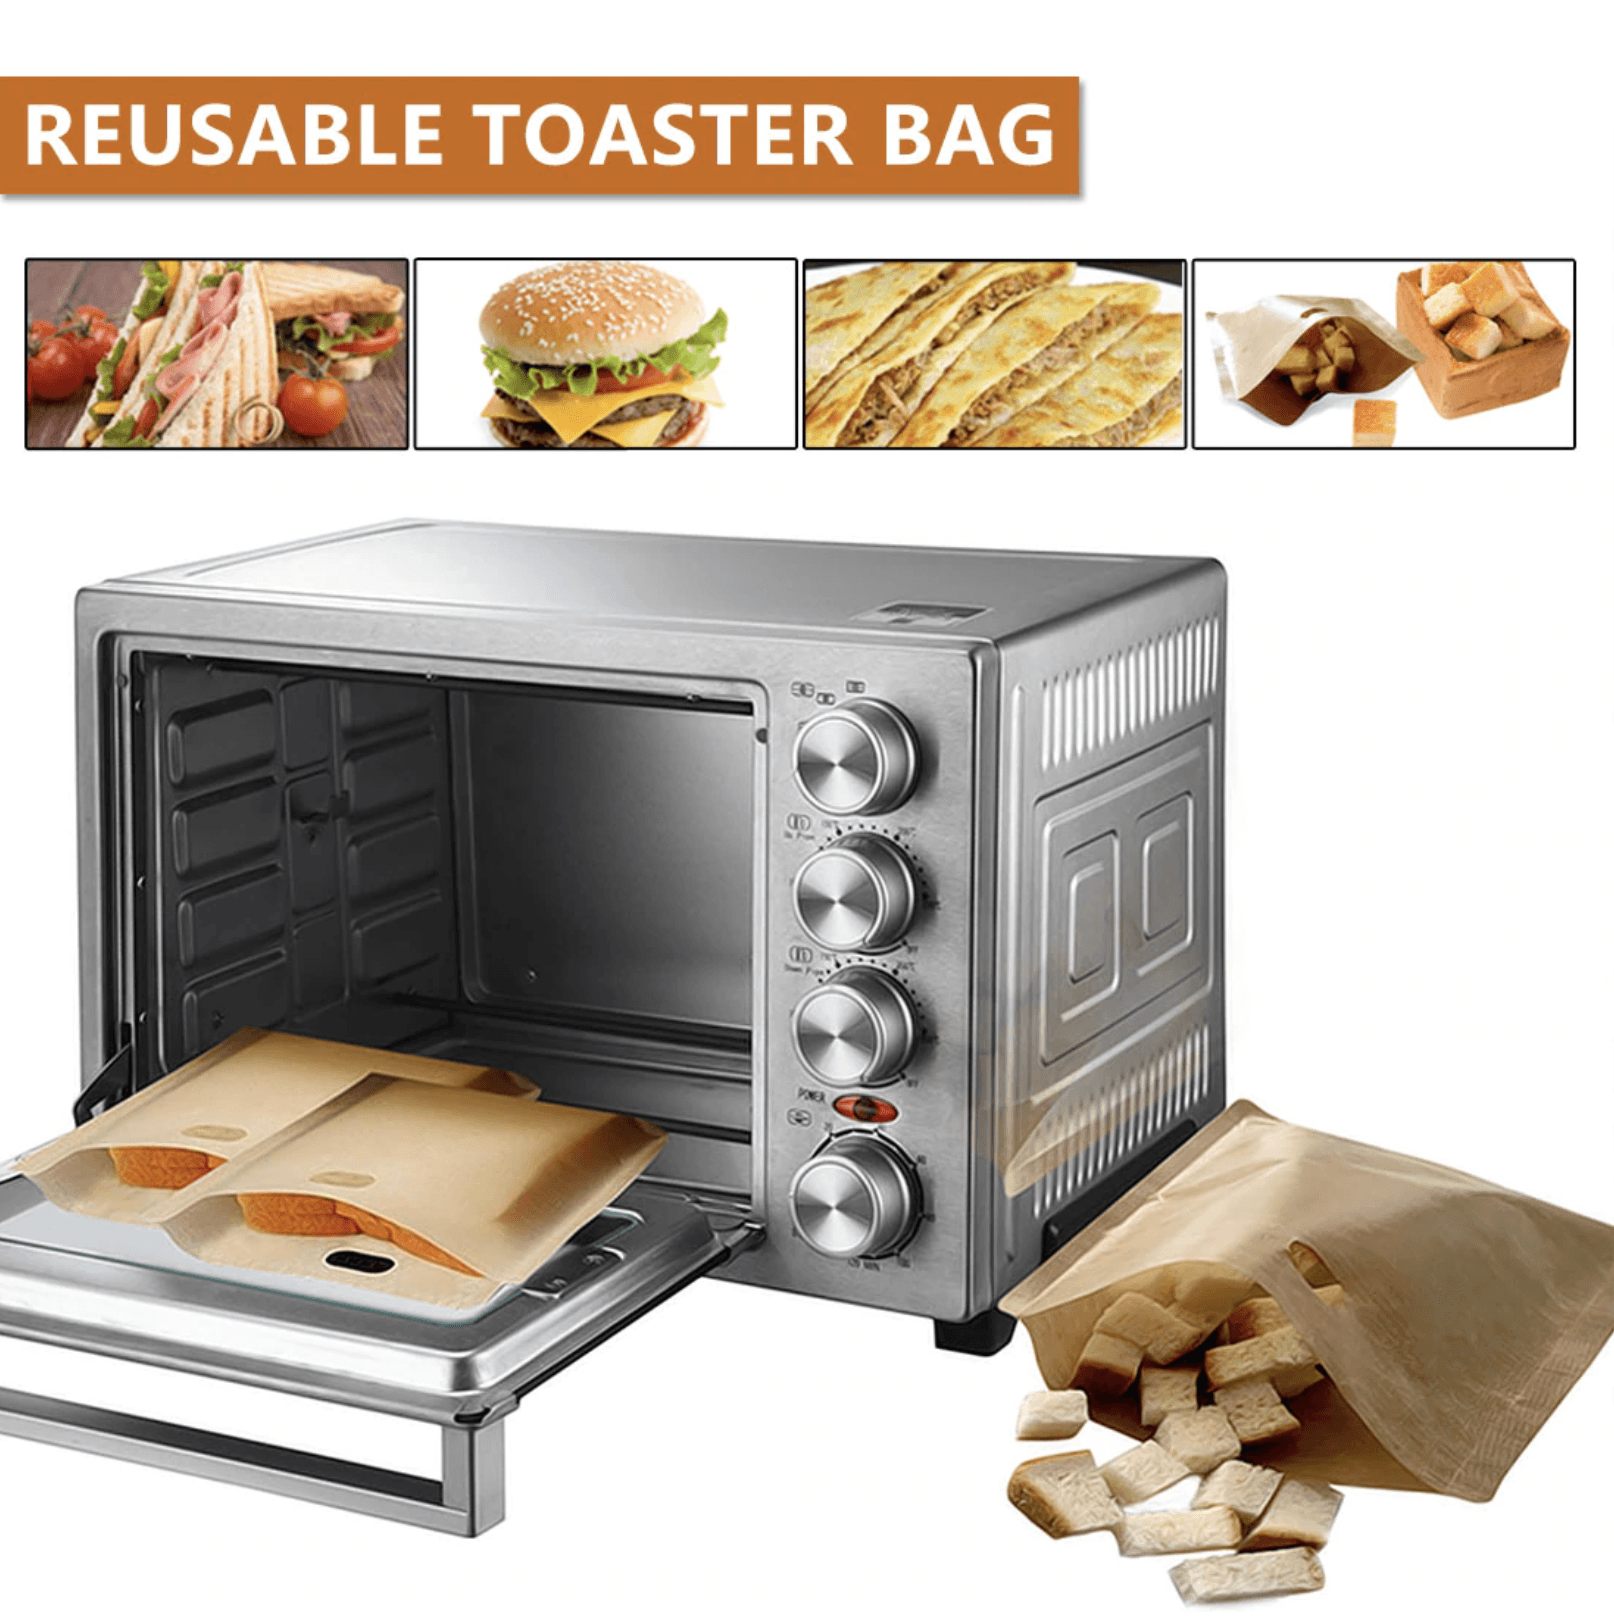 Reusable Toaster Bag summertwinkle